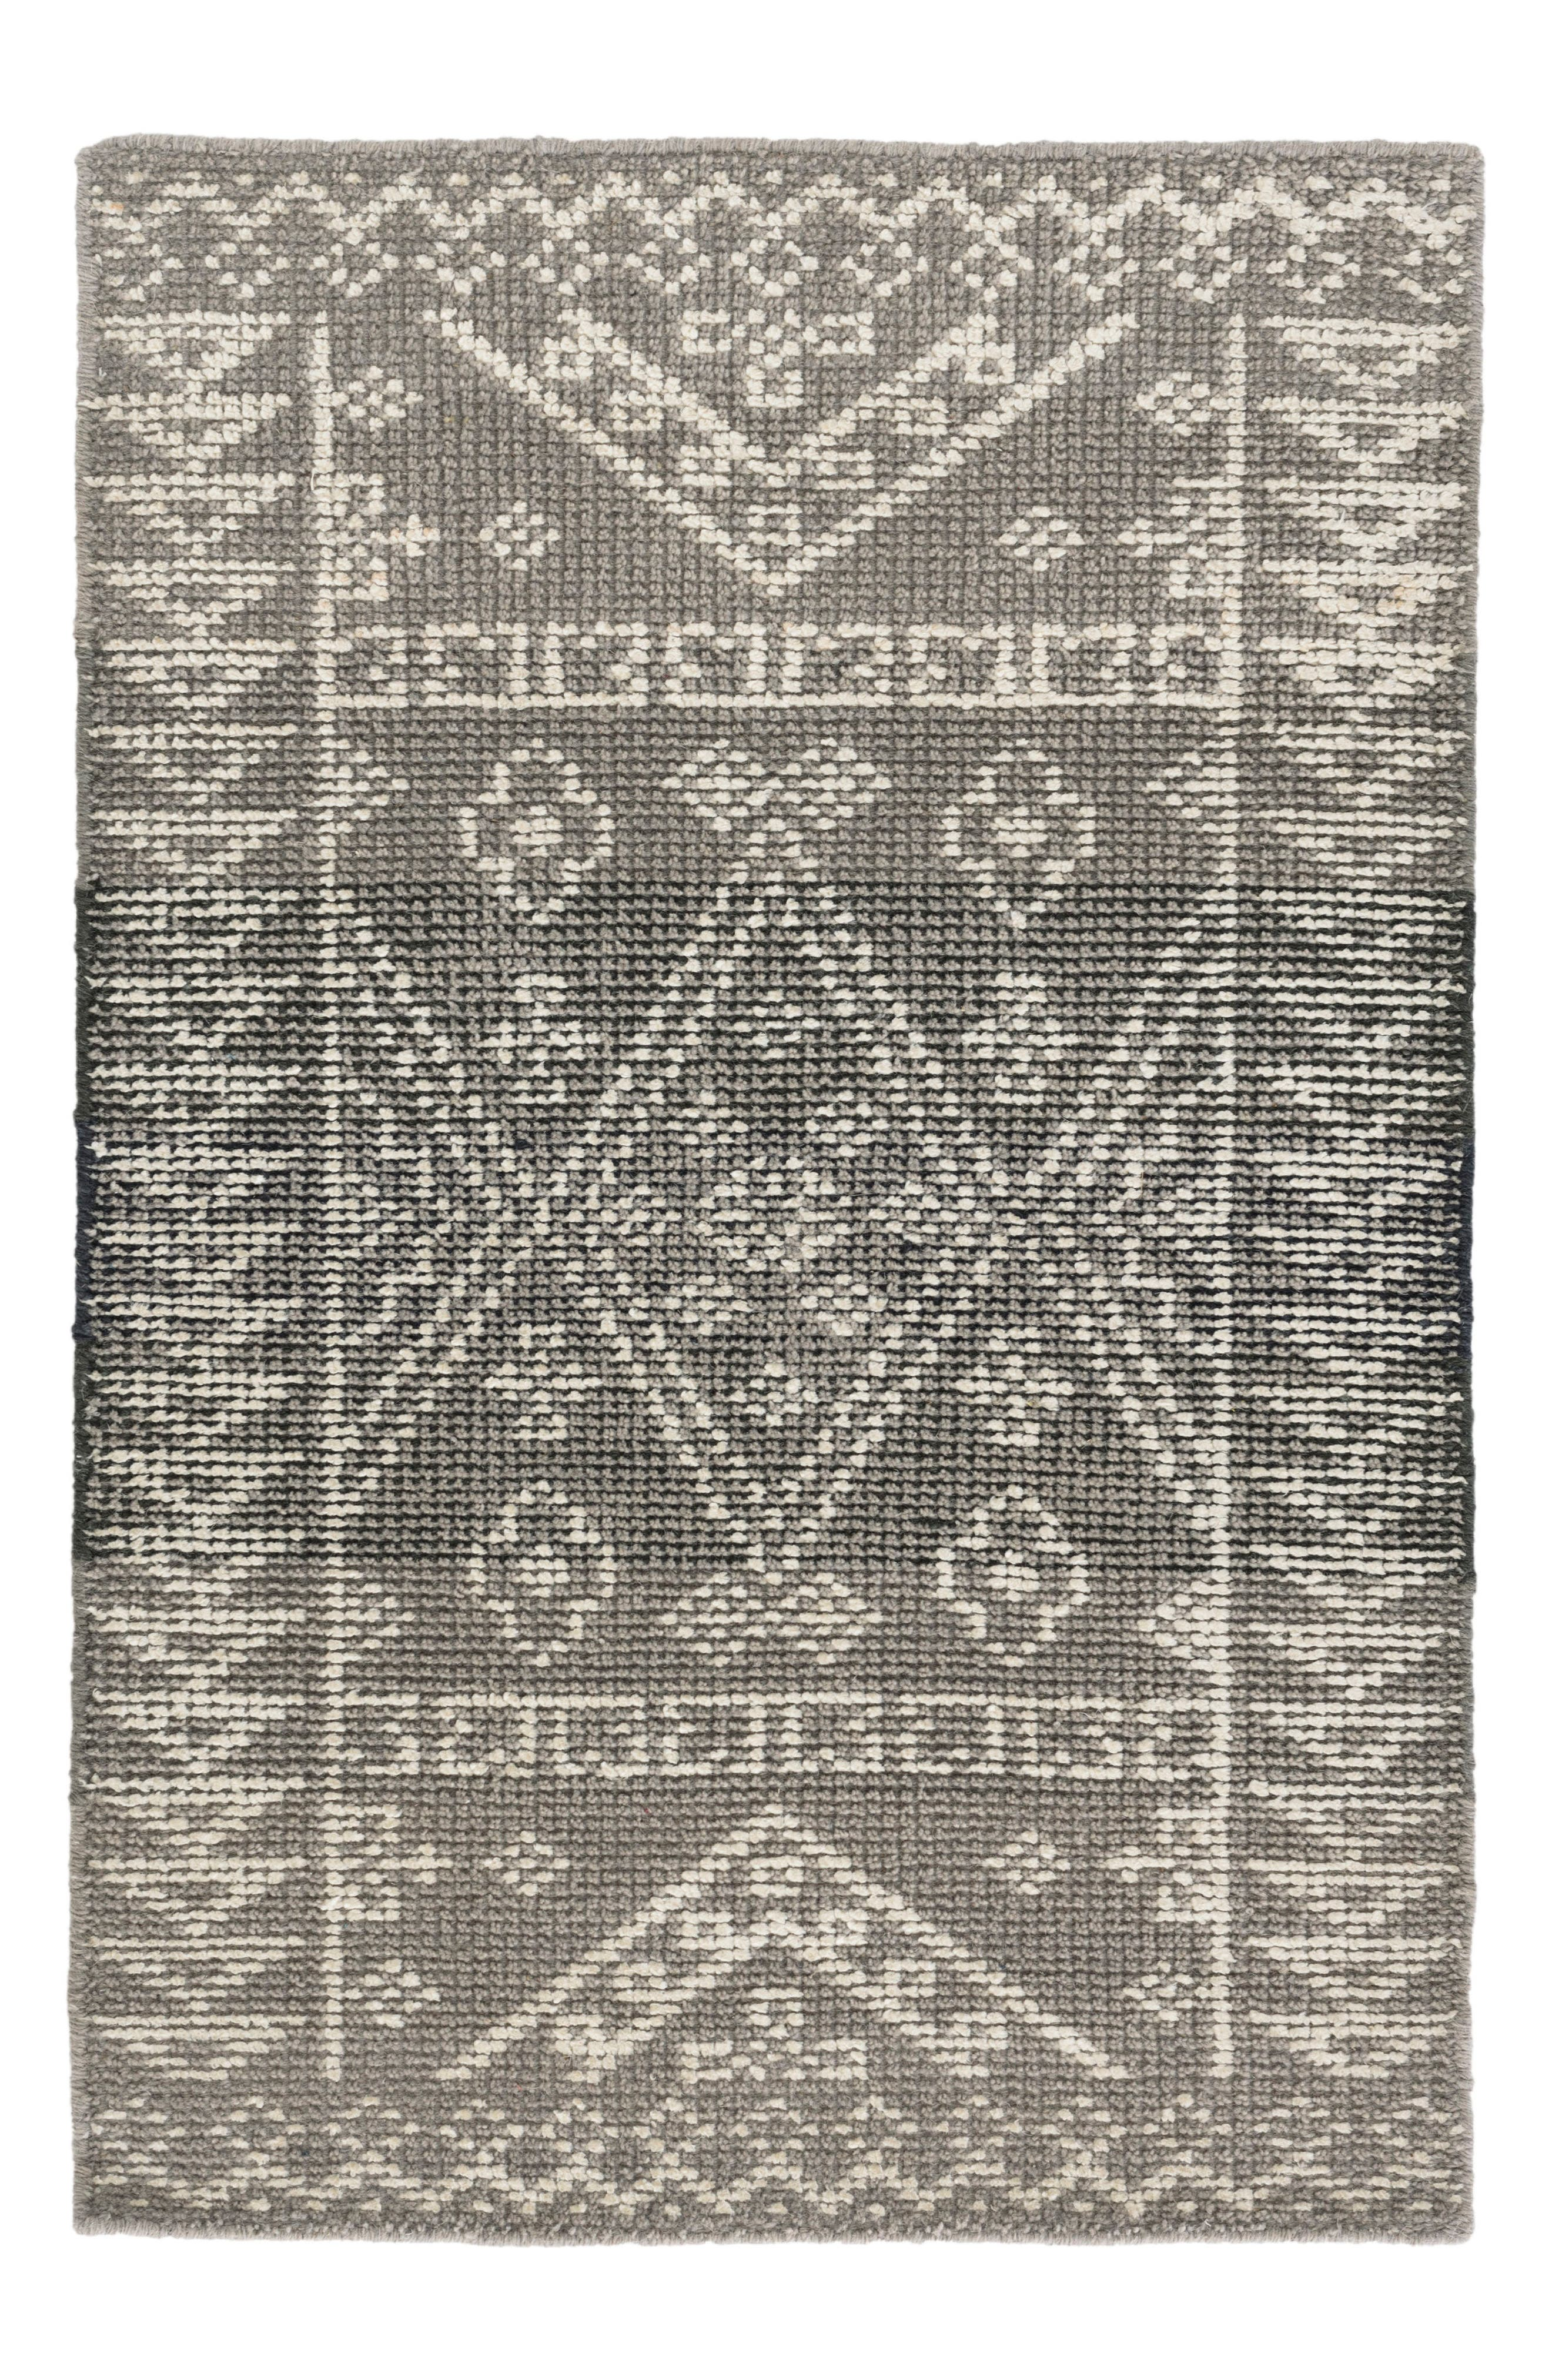 Arelli Hand Knotted Rug,                         Main,                         color, Grey